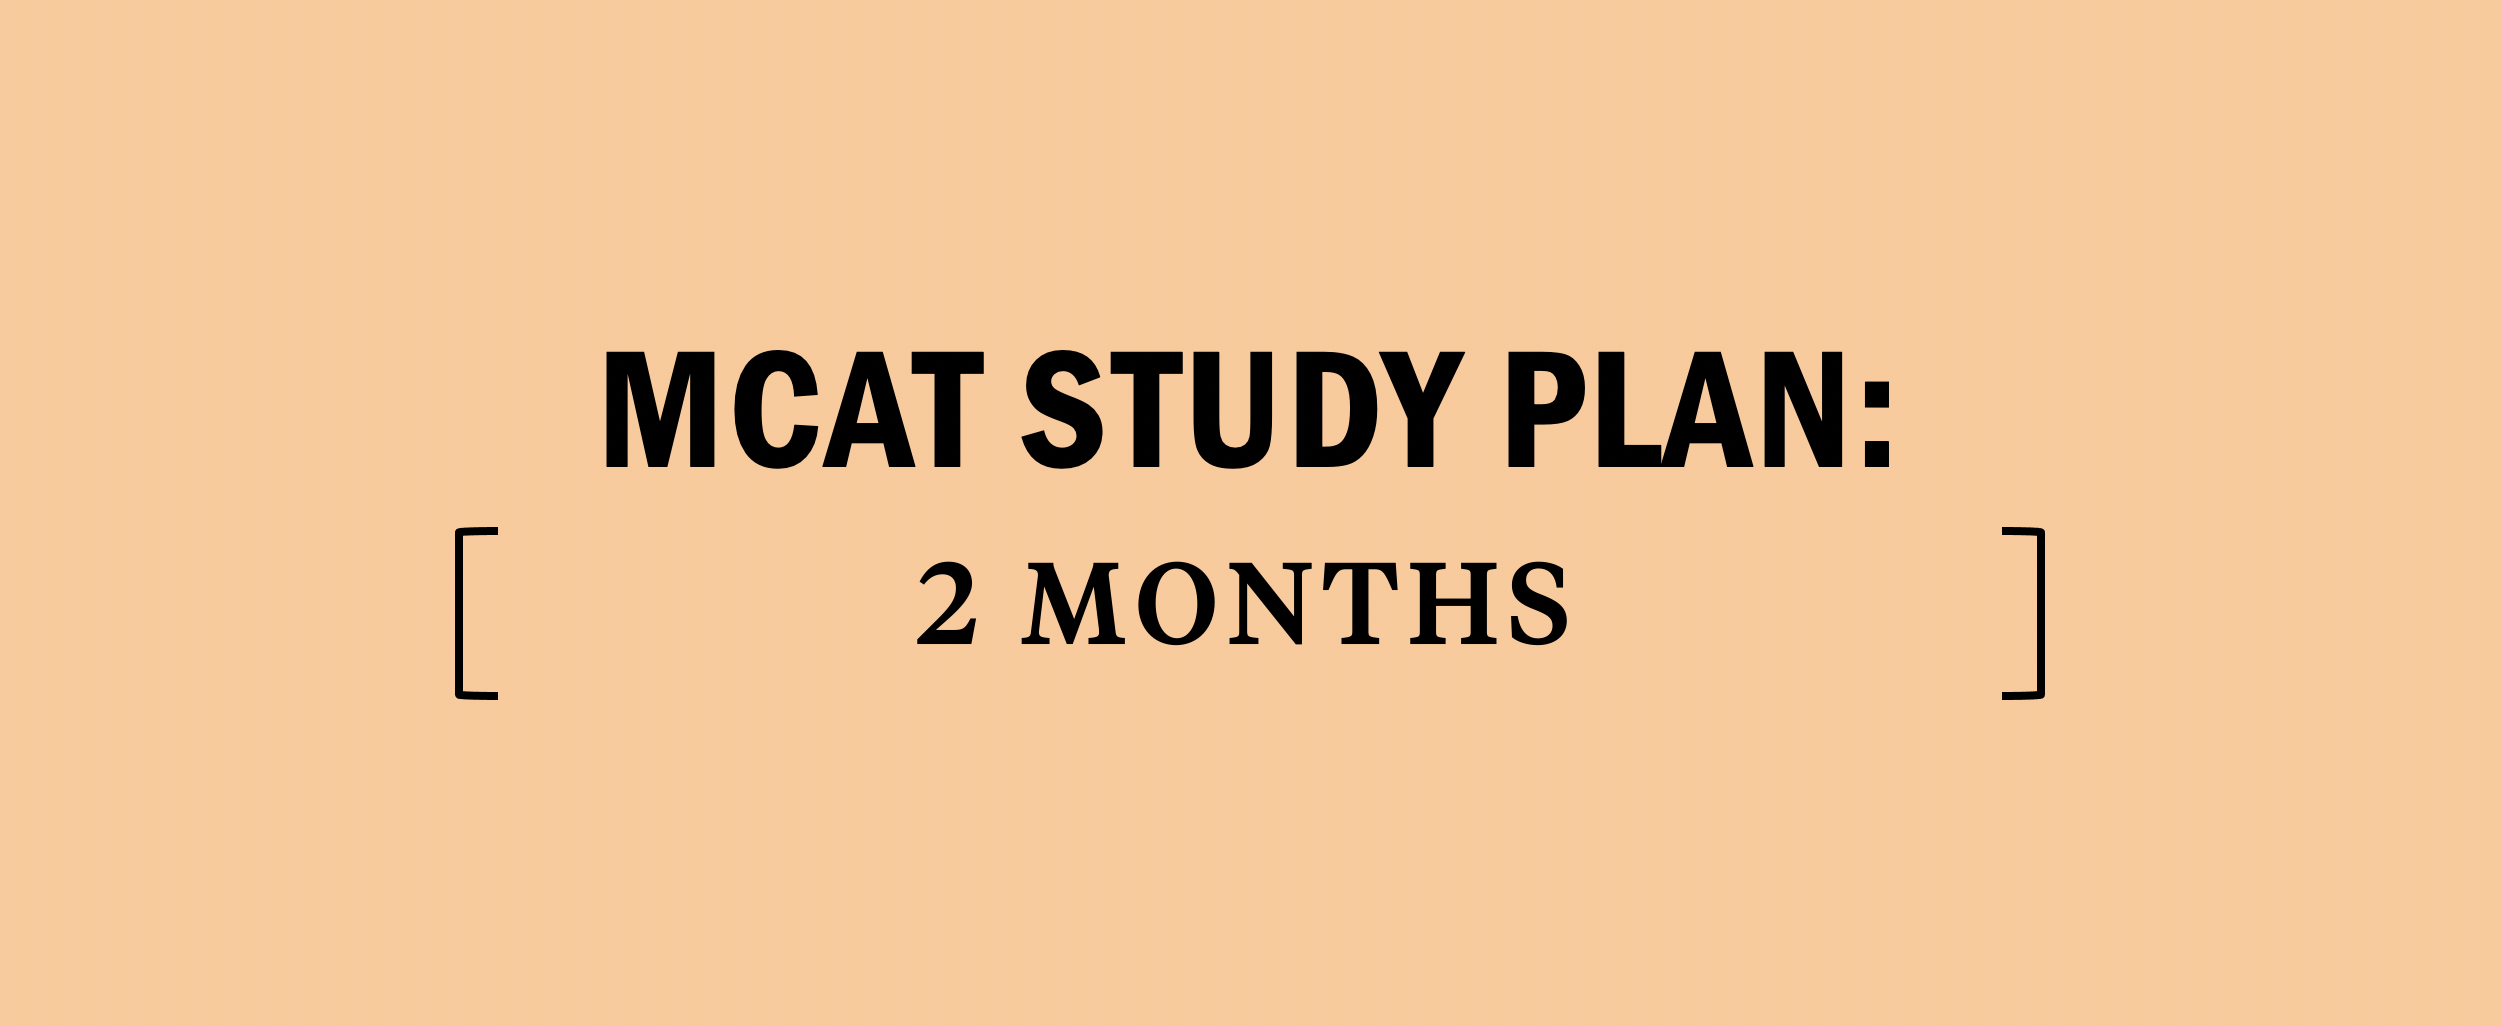 mcat-study-plan-2-two-month-months-how-to-prep-schedule-medical-school